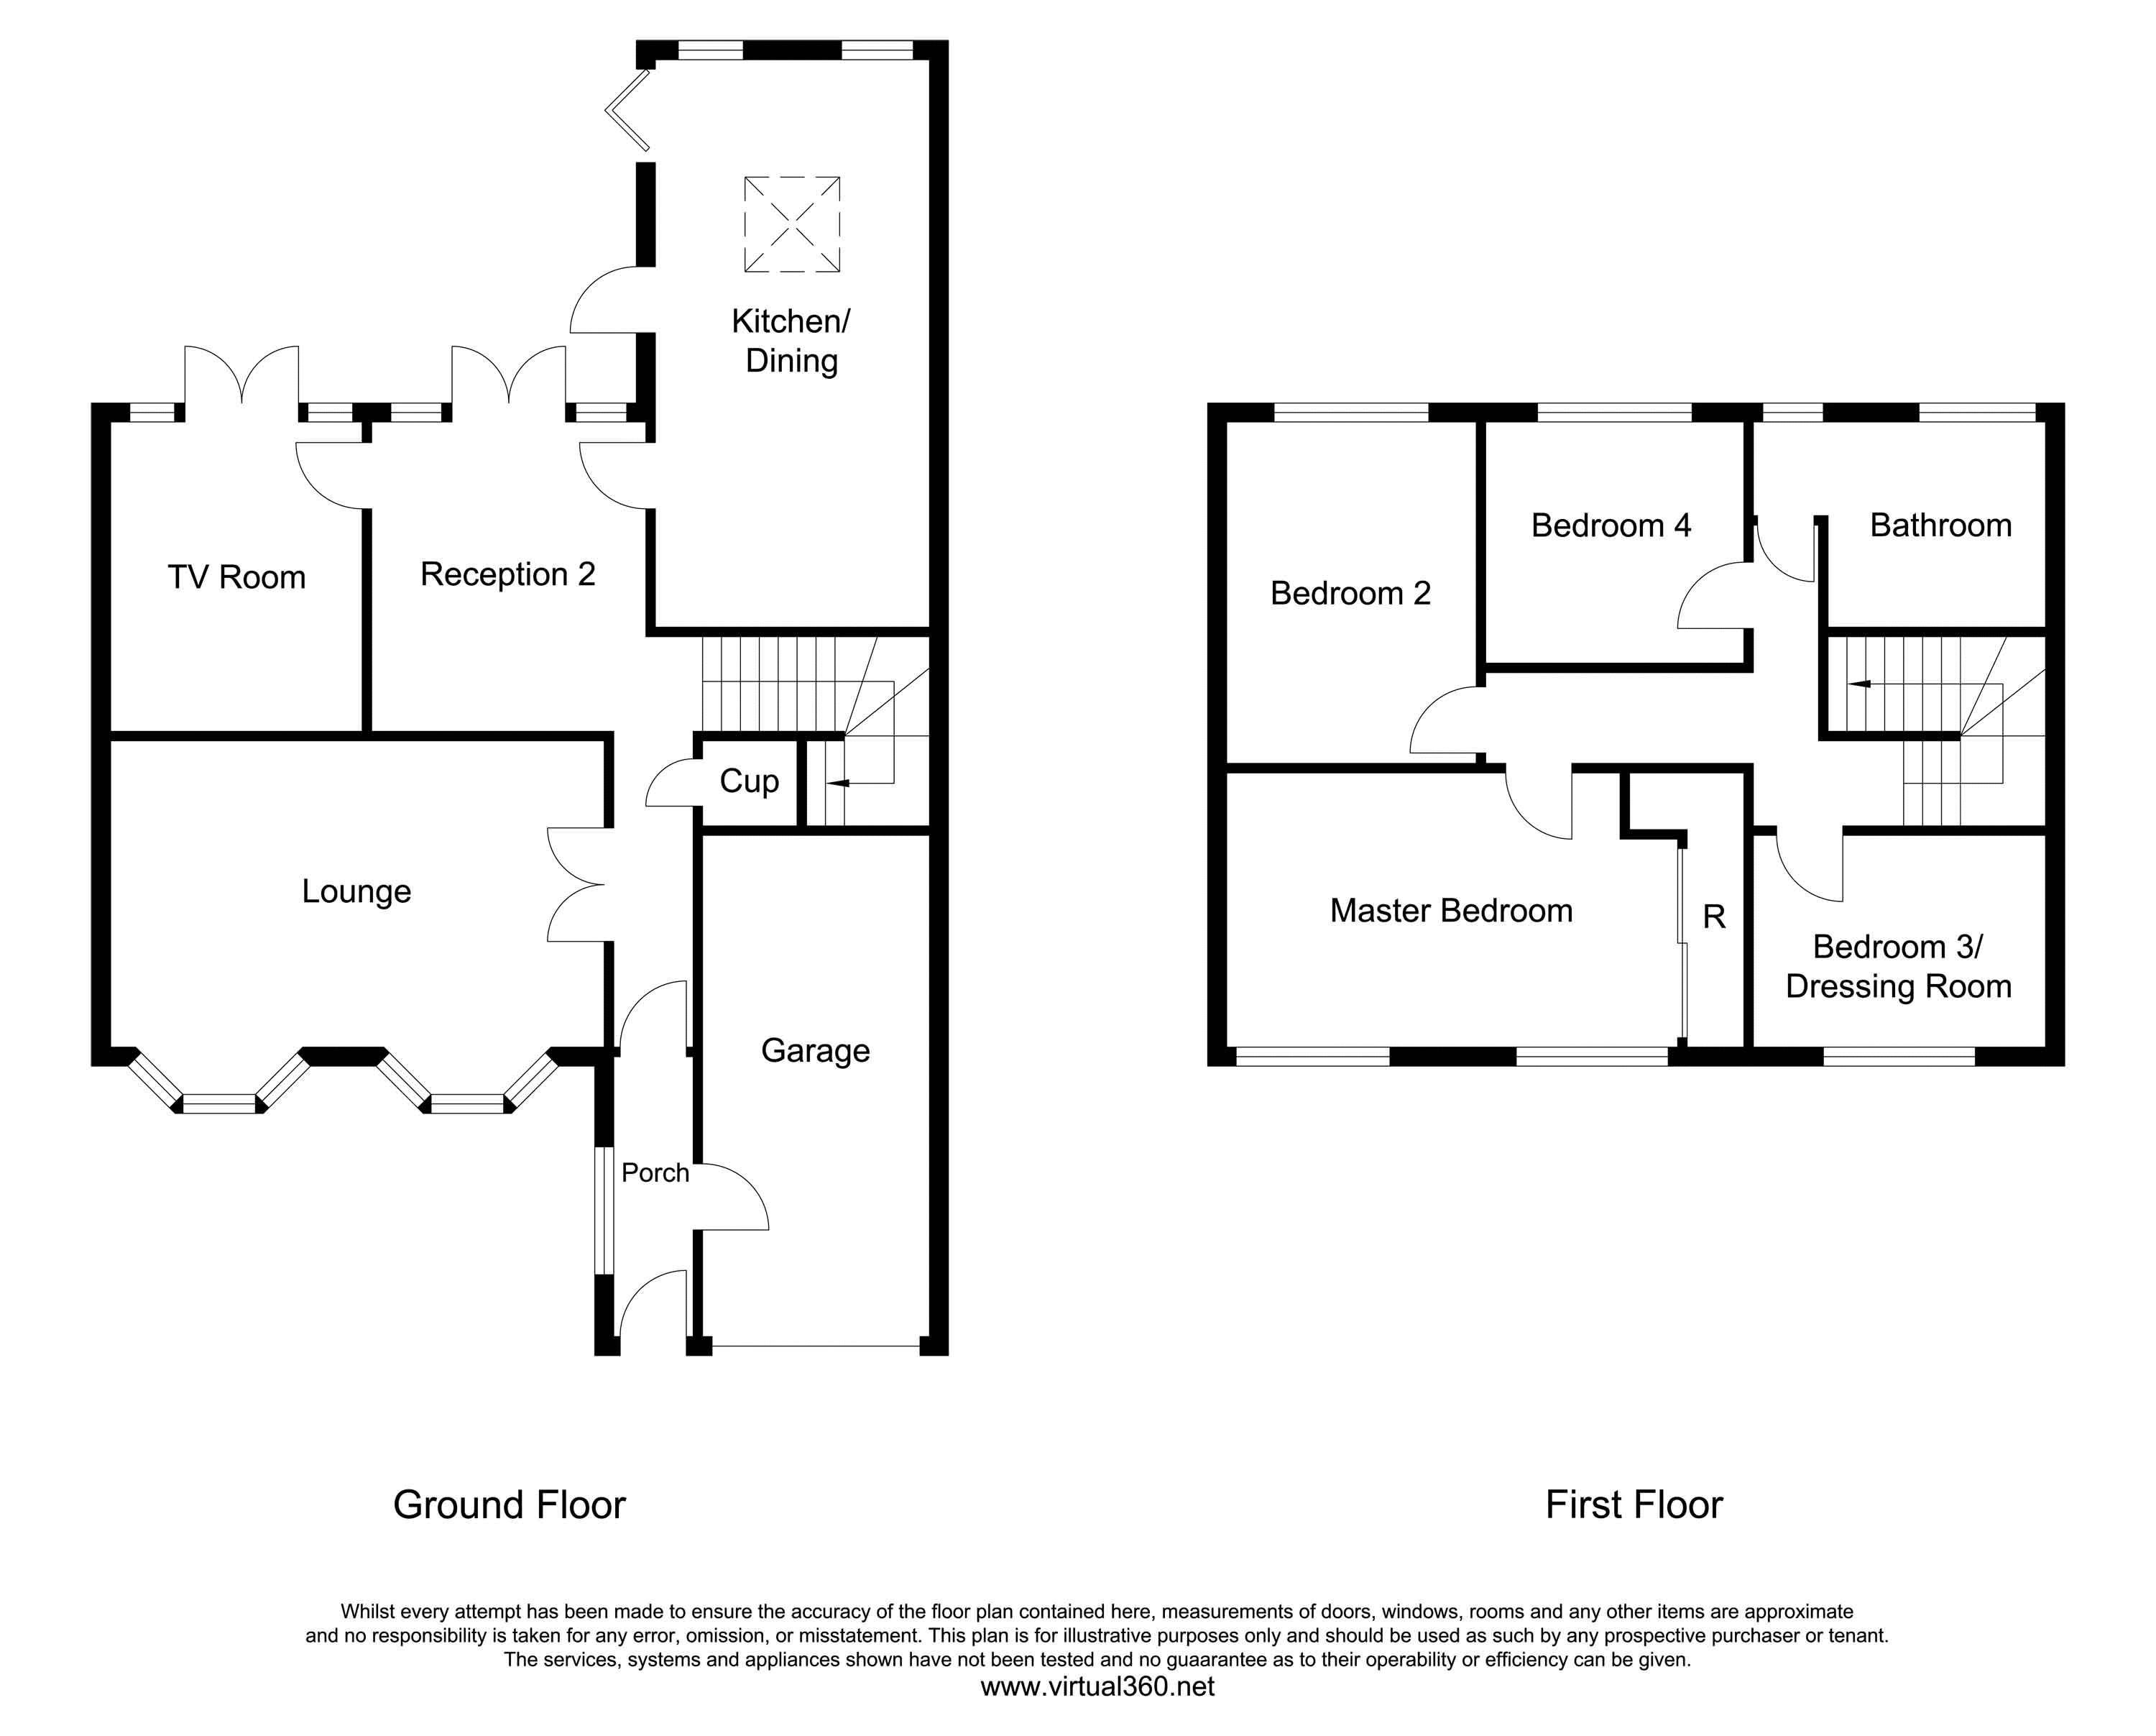 Manion Avenue, Liverpool floor plan